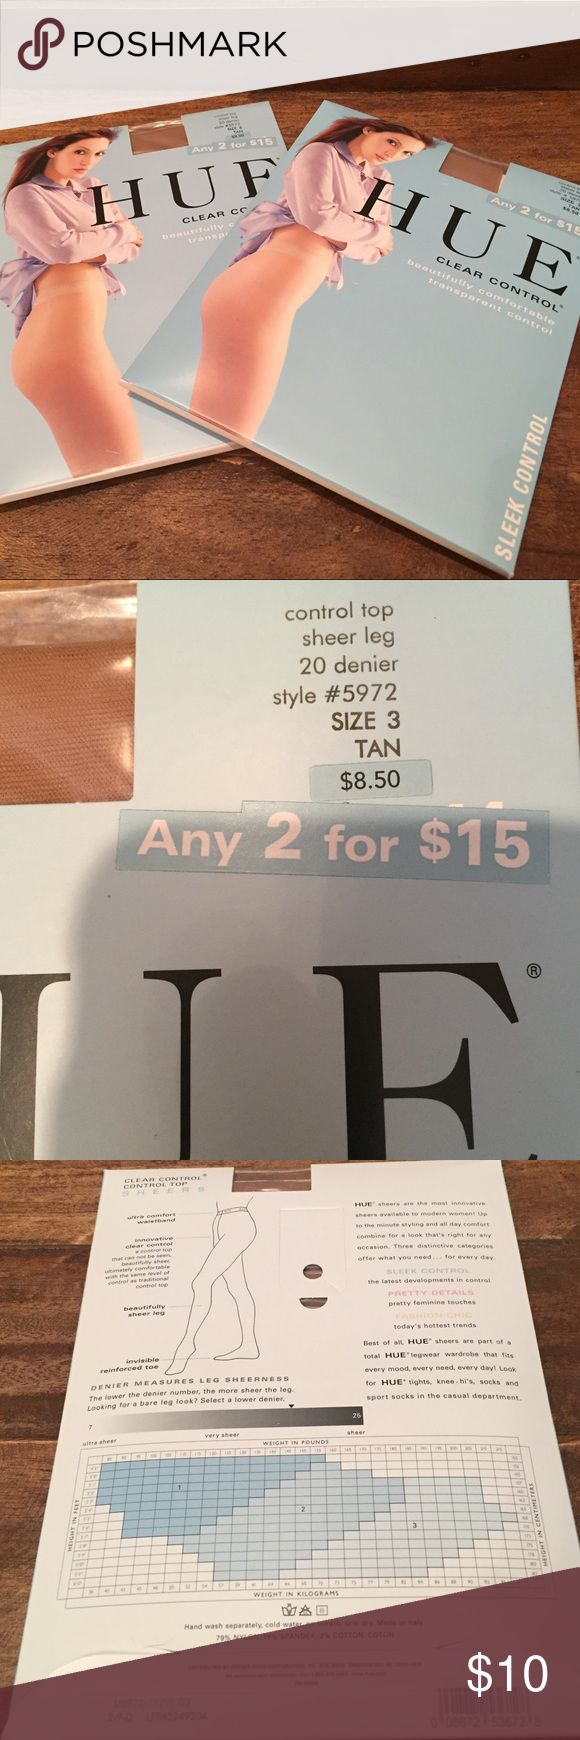 New HUE Clear Control Pantyhose Brand new, set of 2 pairs! HUE Clear Control Pantyhose. Both pairs are size 3 in the color Tan. HUE Accessories Hosiery & Socks